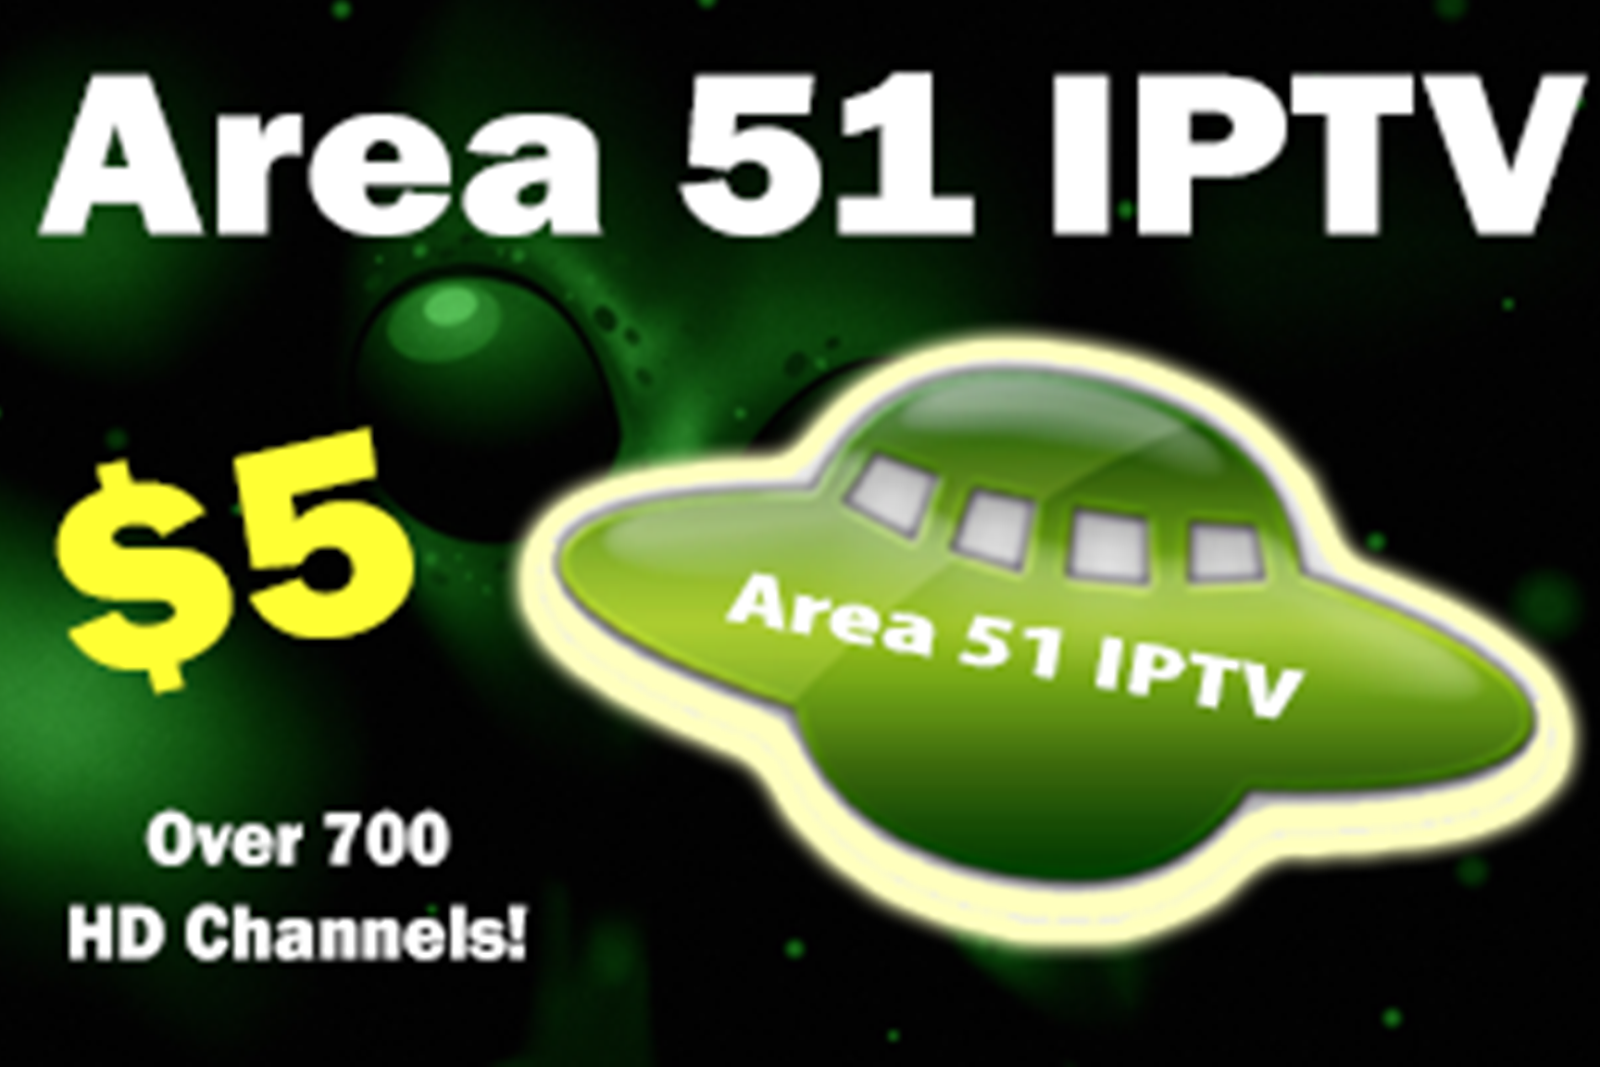 💐 Area 51 apk channel list | Area 51 IPTV APK Download For Android